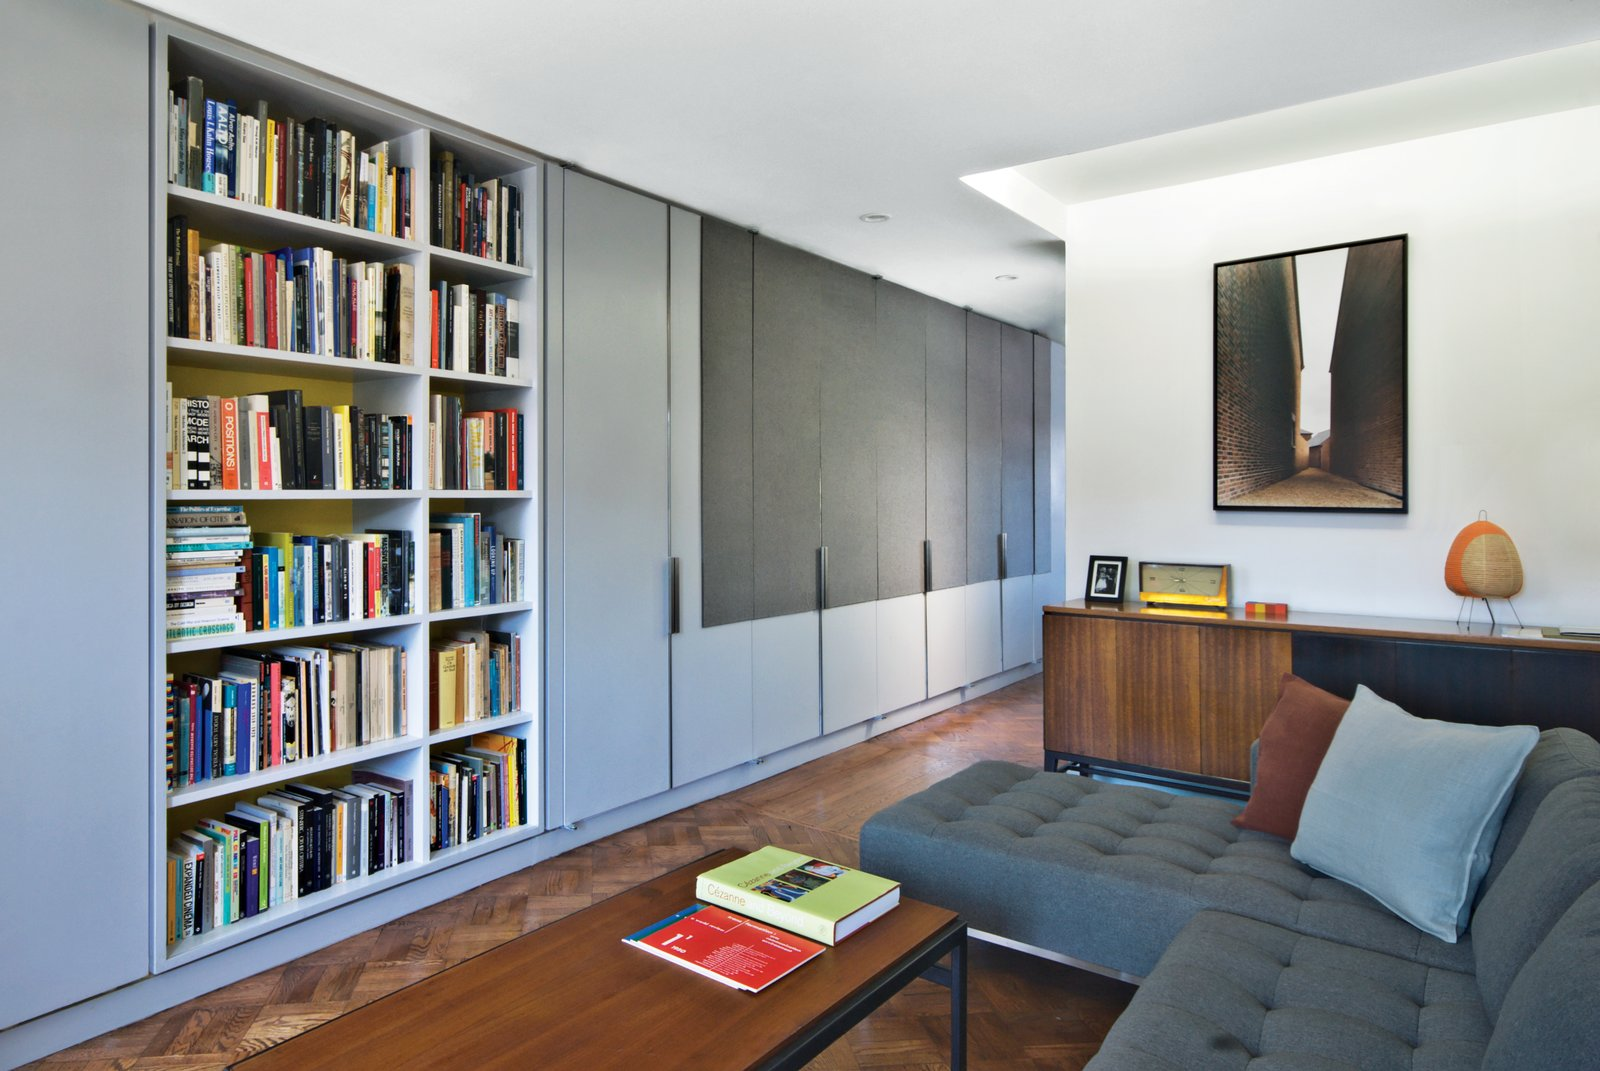 Space saving renovation in brooklyn collection of 4 photos - Small spaces tv show channel gallery ...